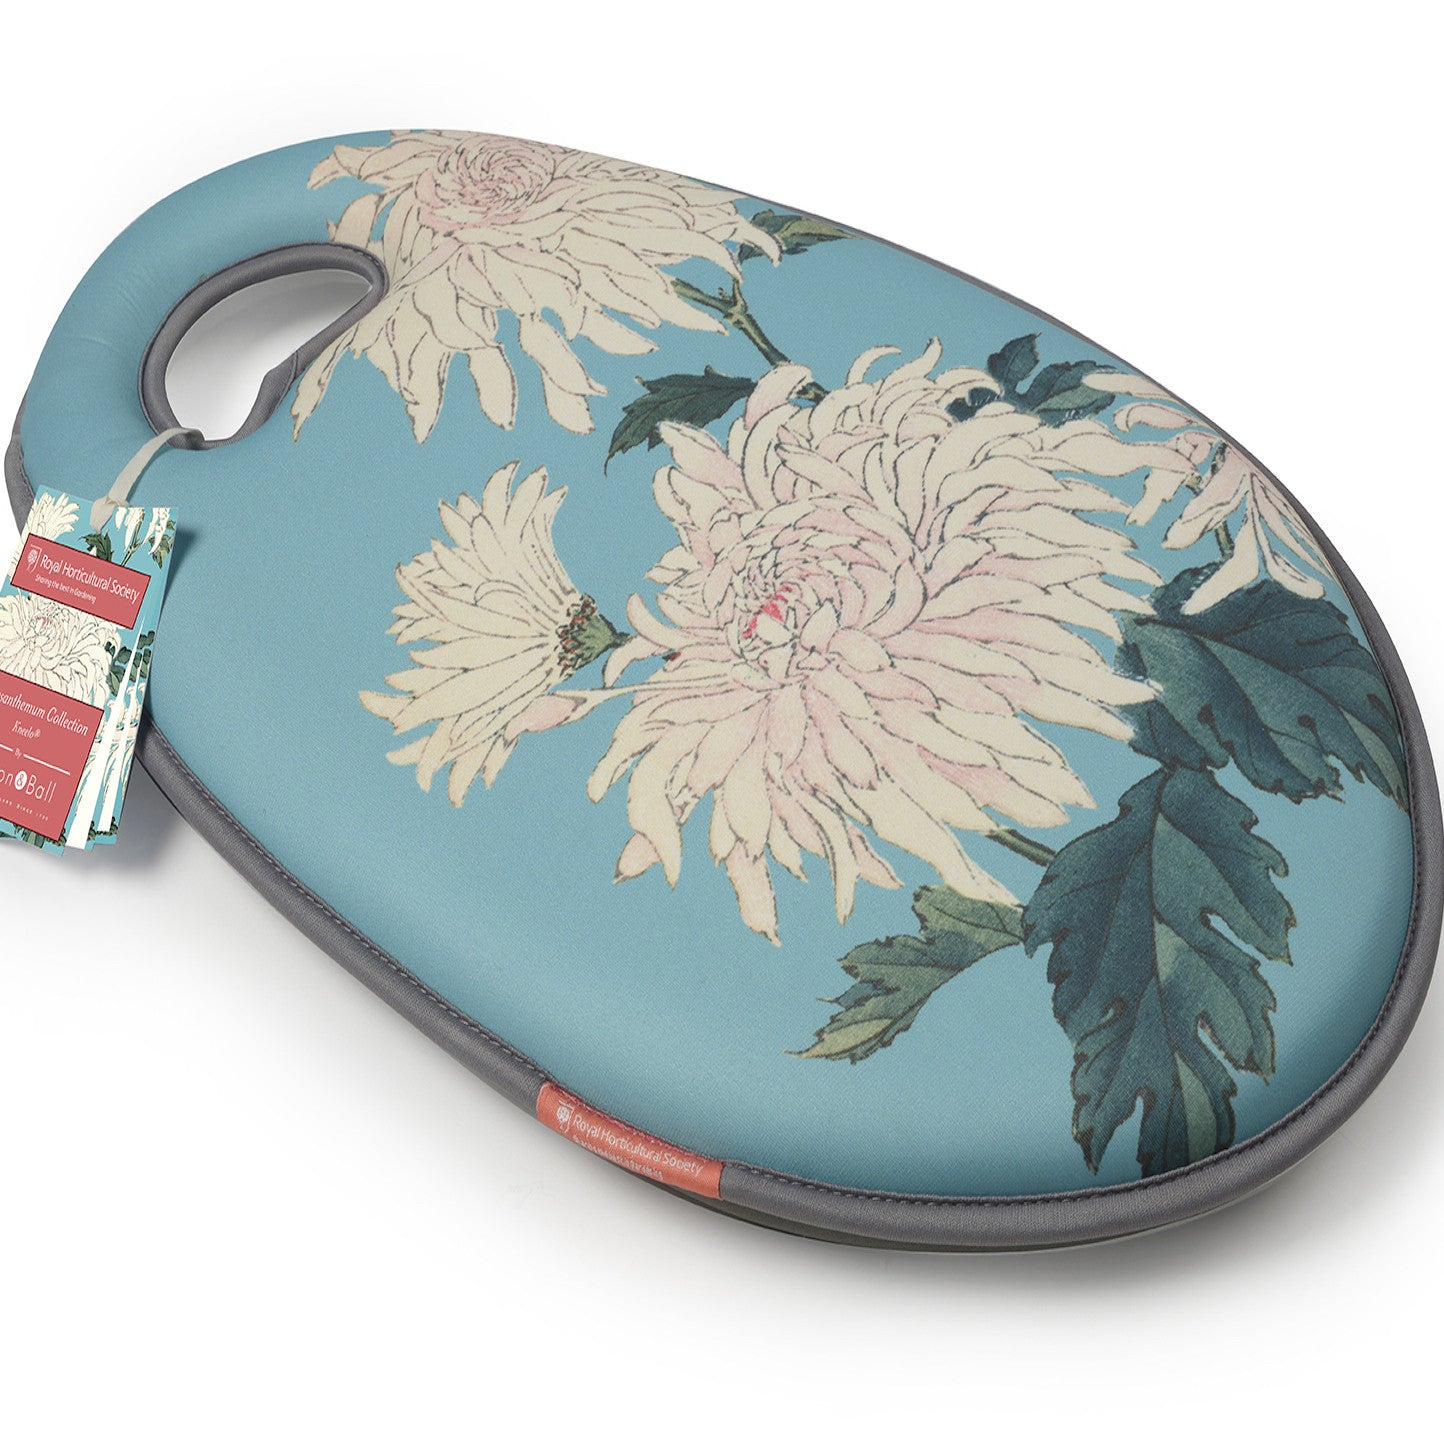 Kneelo® Kneeler - Chrysanthemum - The Potting Shed Garden Tools